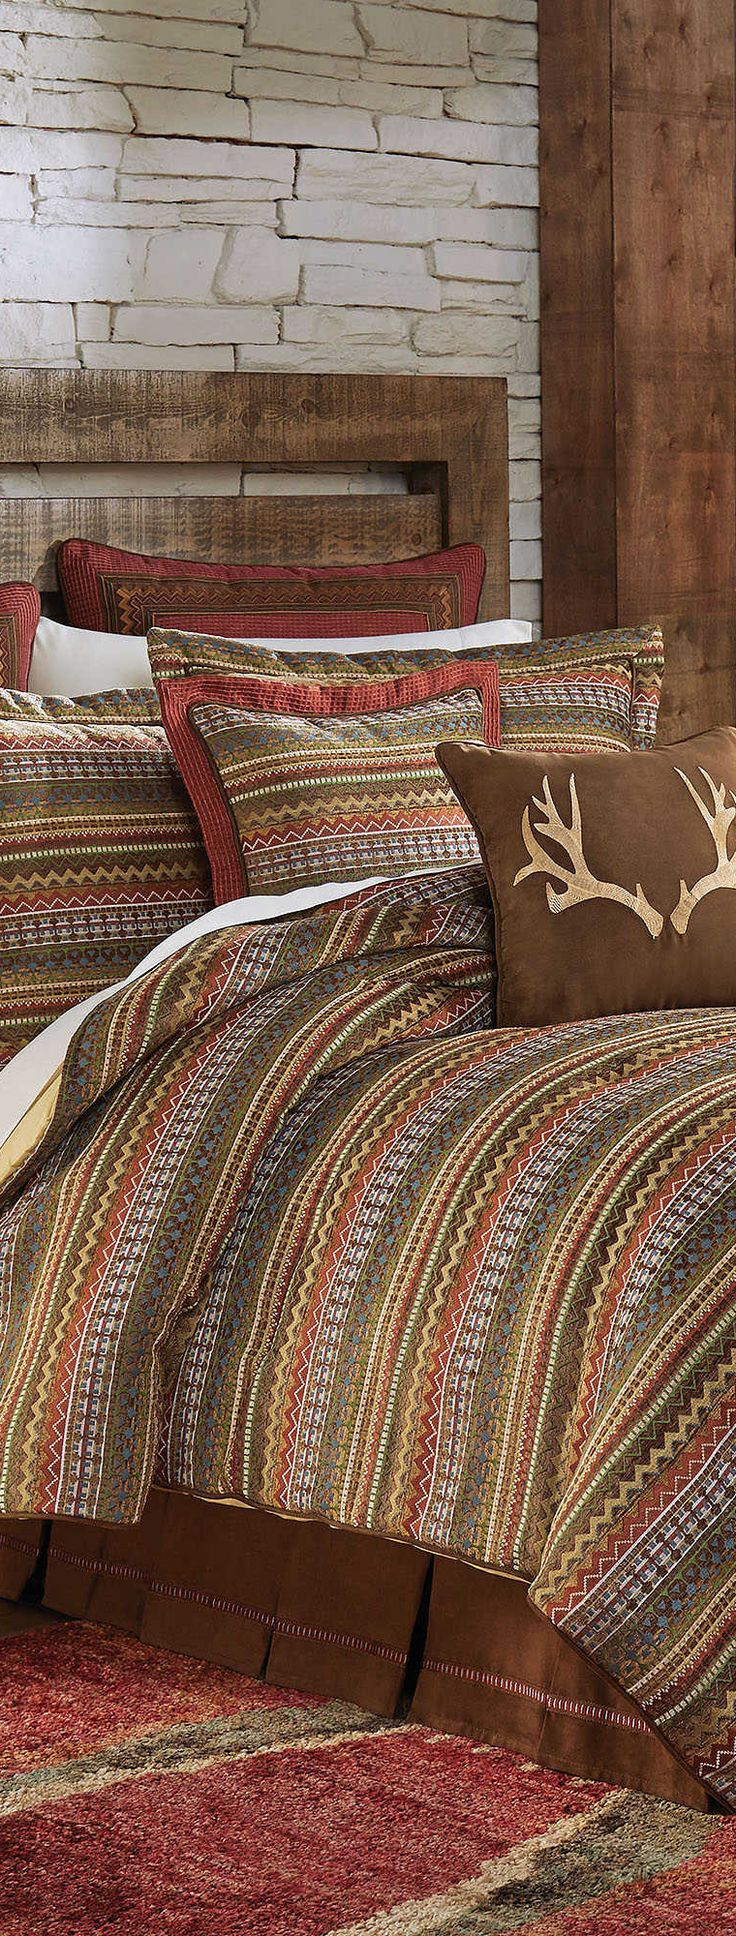 Brown bed sheets texture - Croscill Rustic Bedding